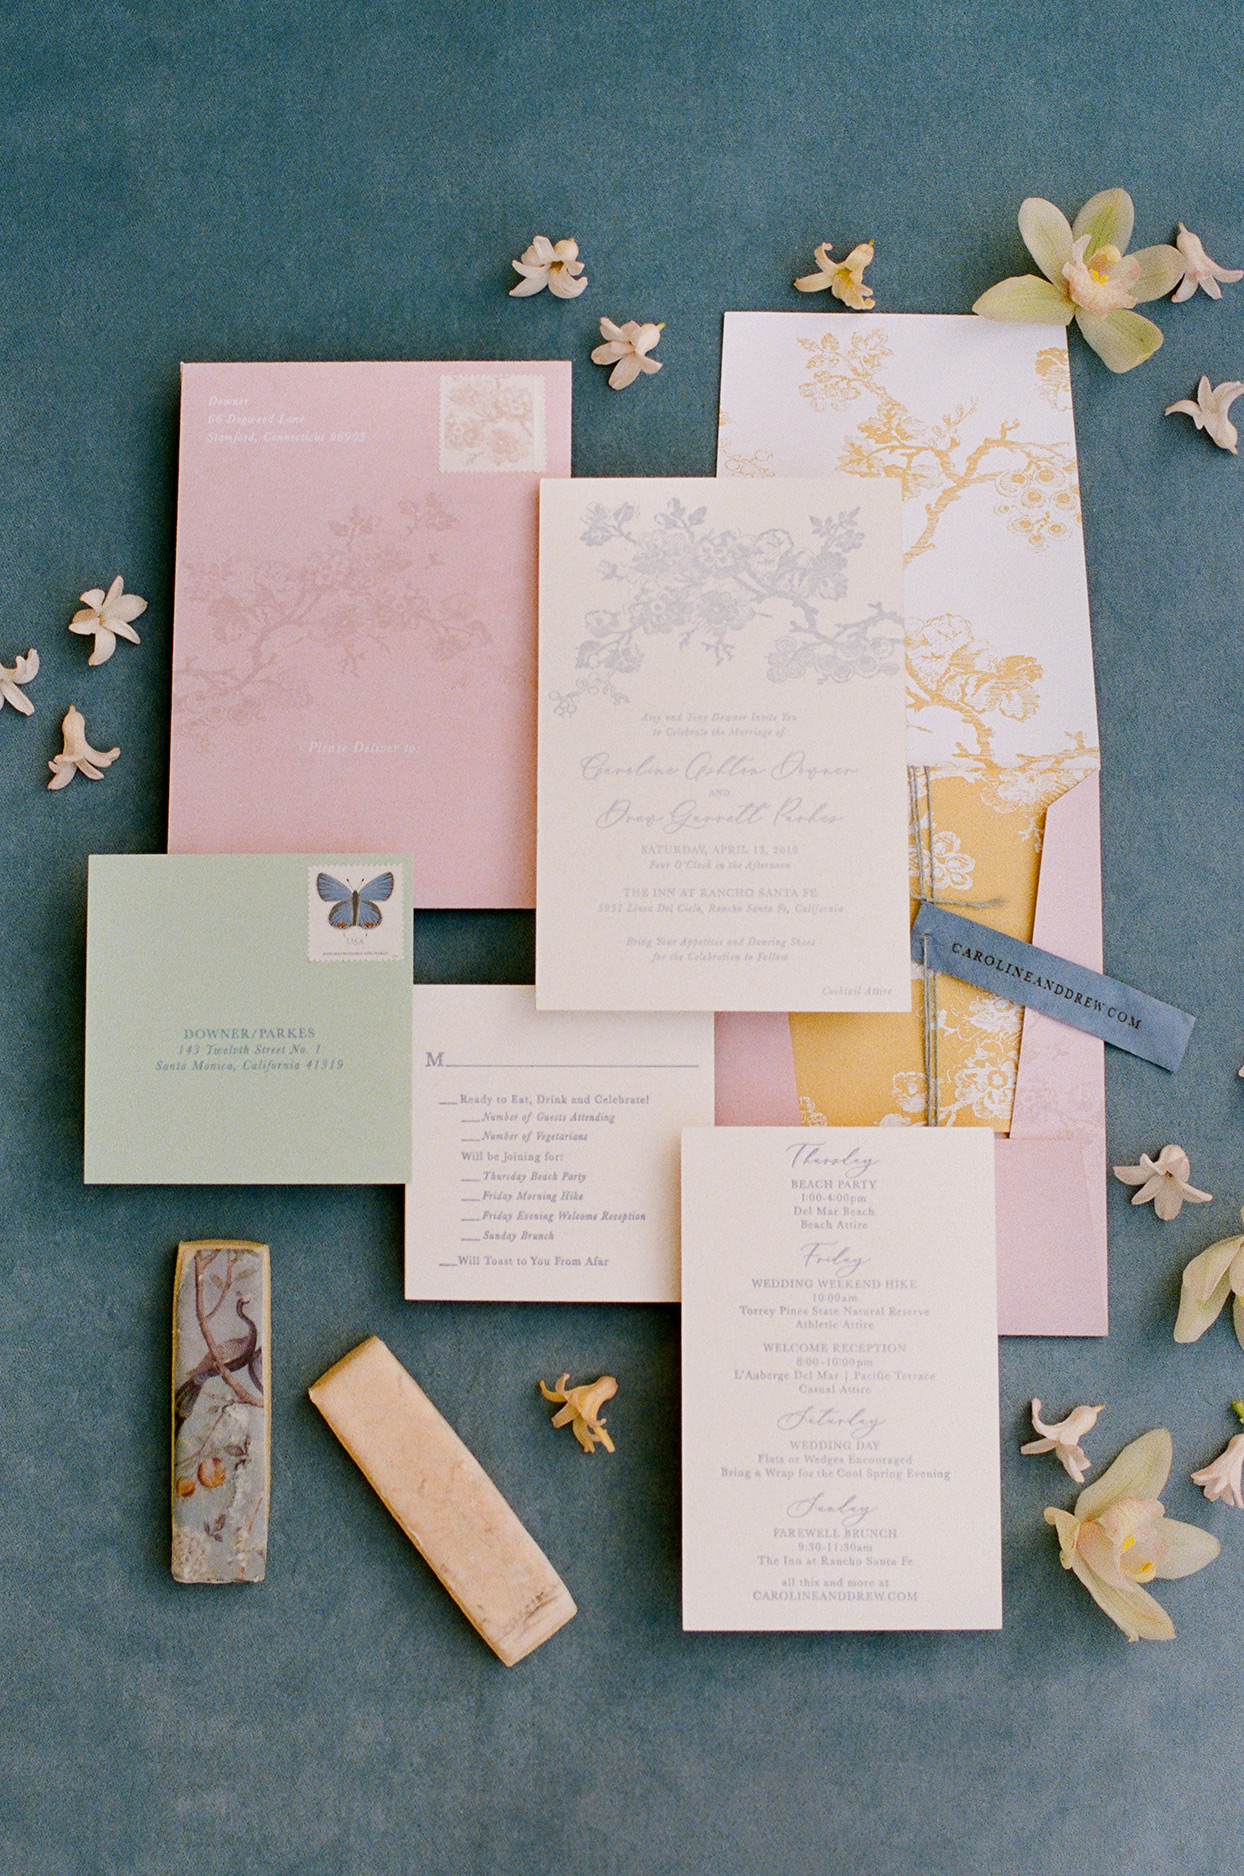 wedding invitation suite with a pastel color scheme with blue letterpress text on a white cotton paper card, a yellow chinois floral liner, and a custom-designed blush envelope